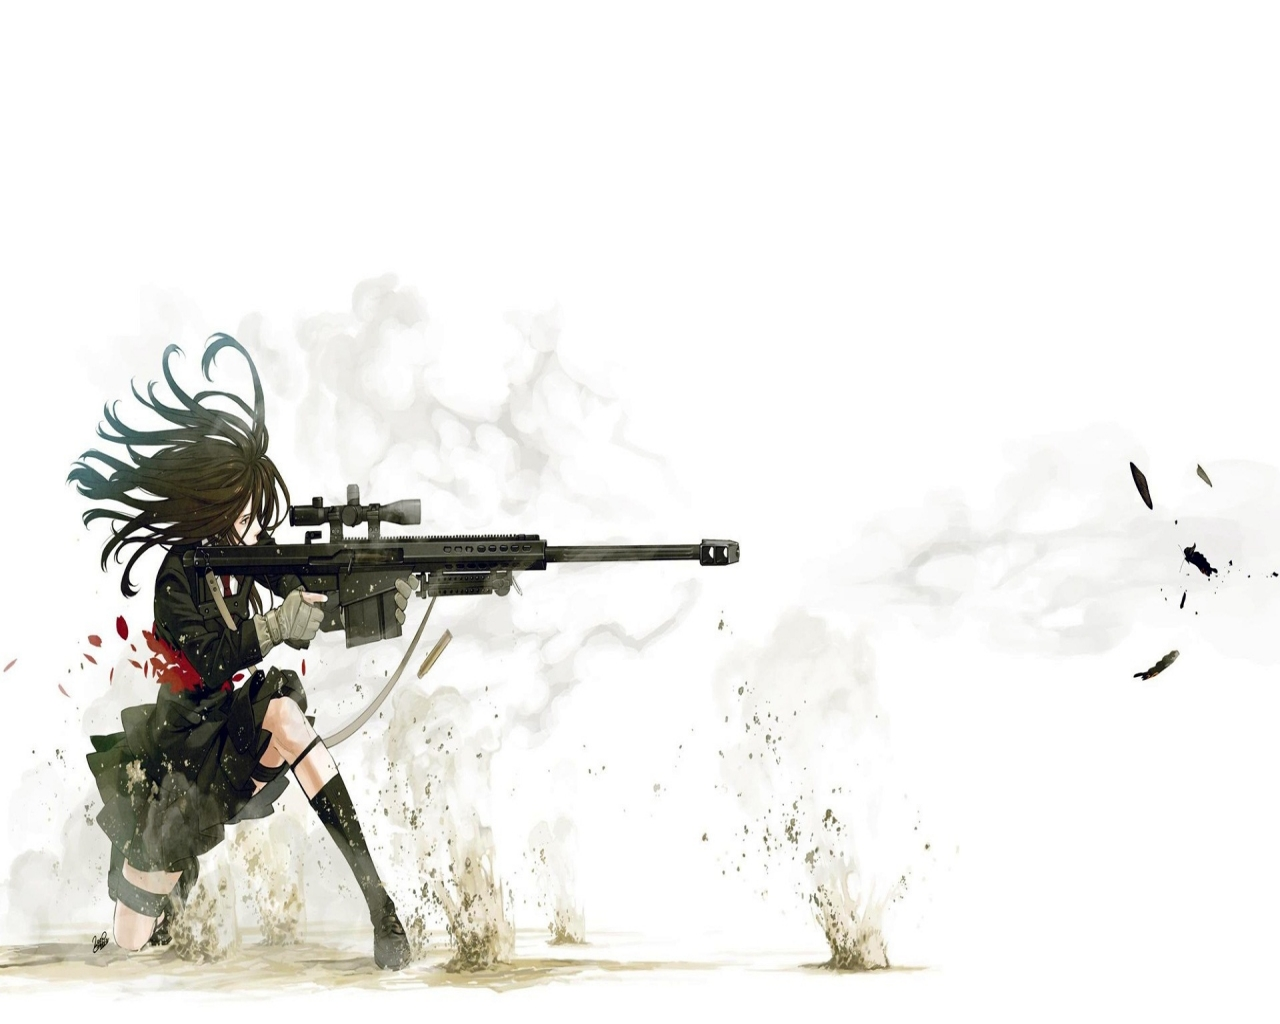 Anime Wallpapers Anime Sniper 2735 1920x1080 pixel Exotic Wallpaper 1280x1024